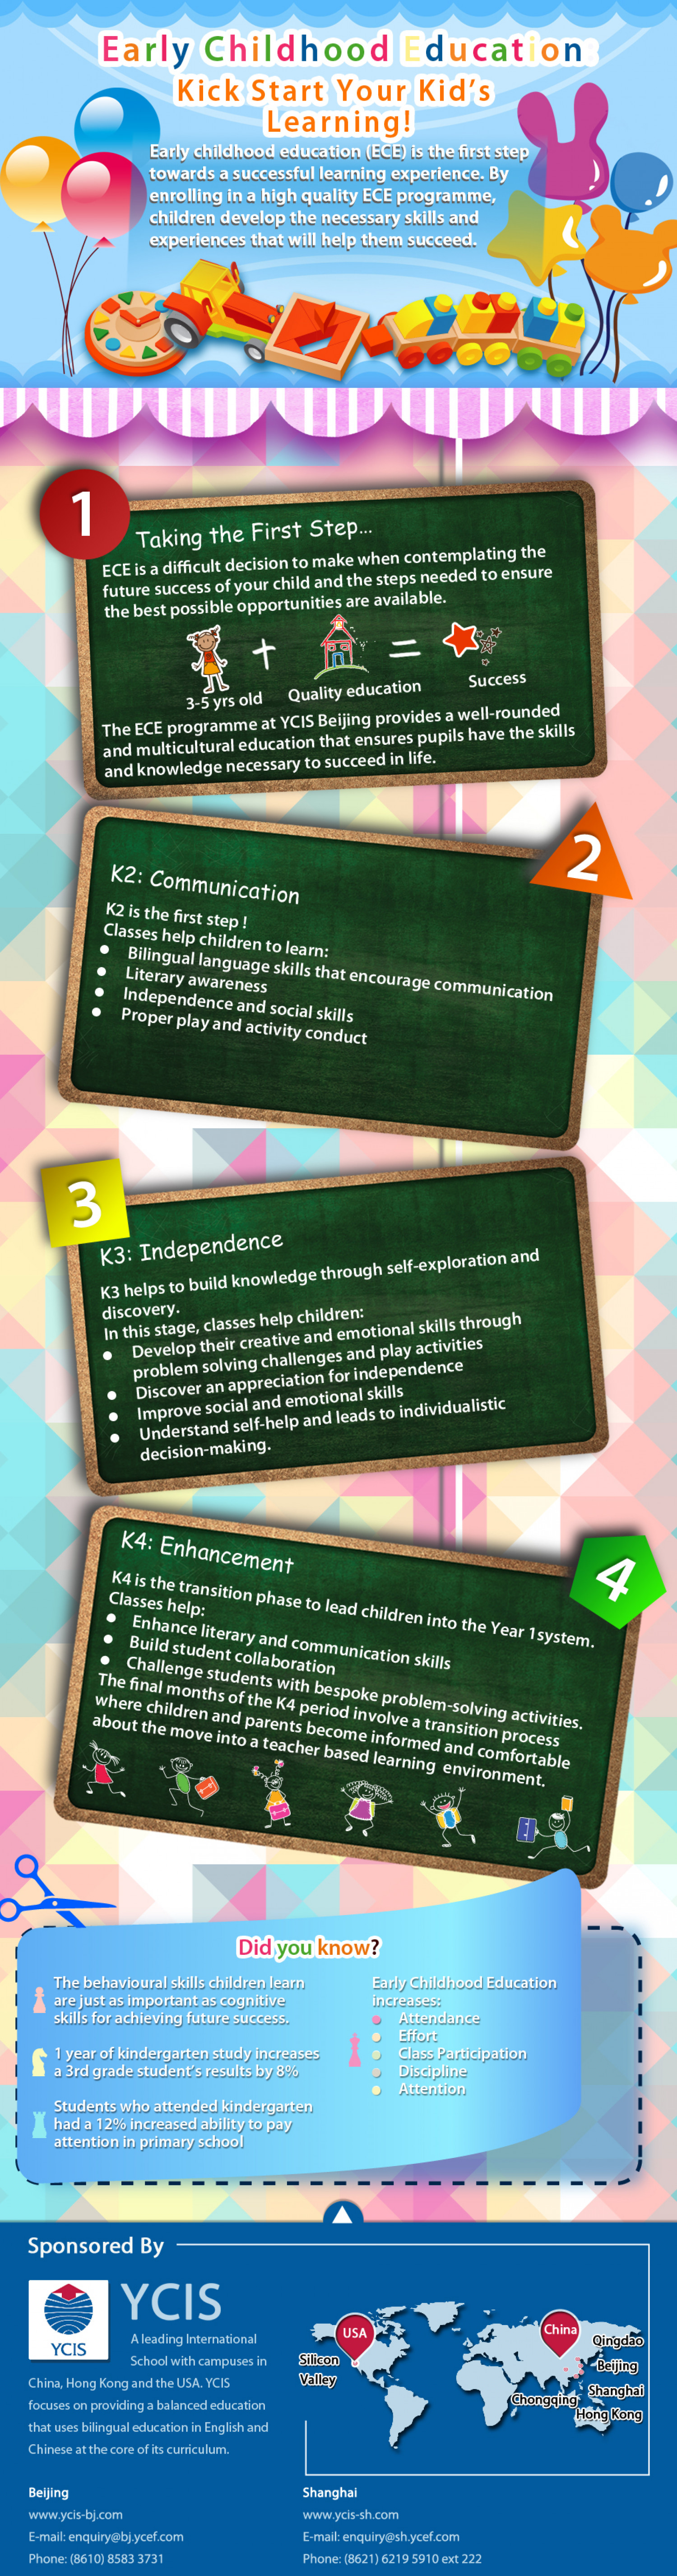 Kick Start Your Kid's Learning Infographic